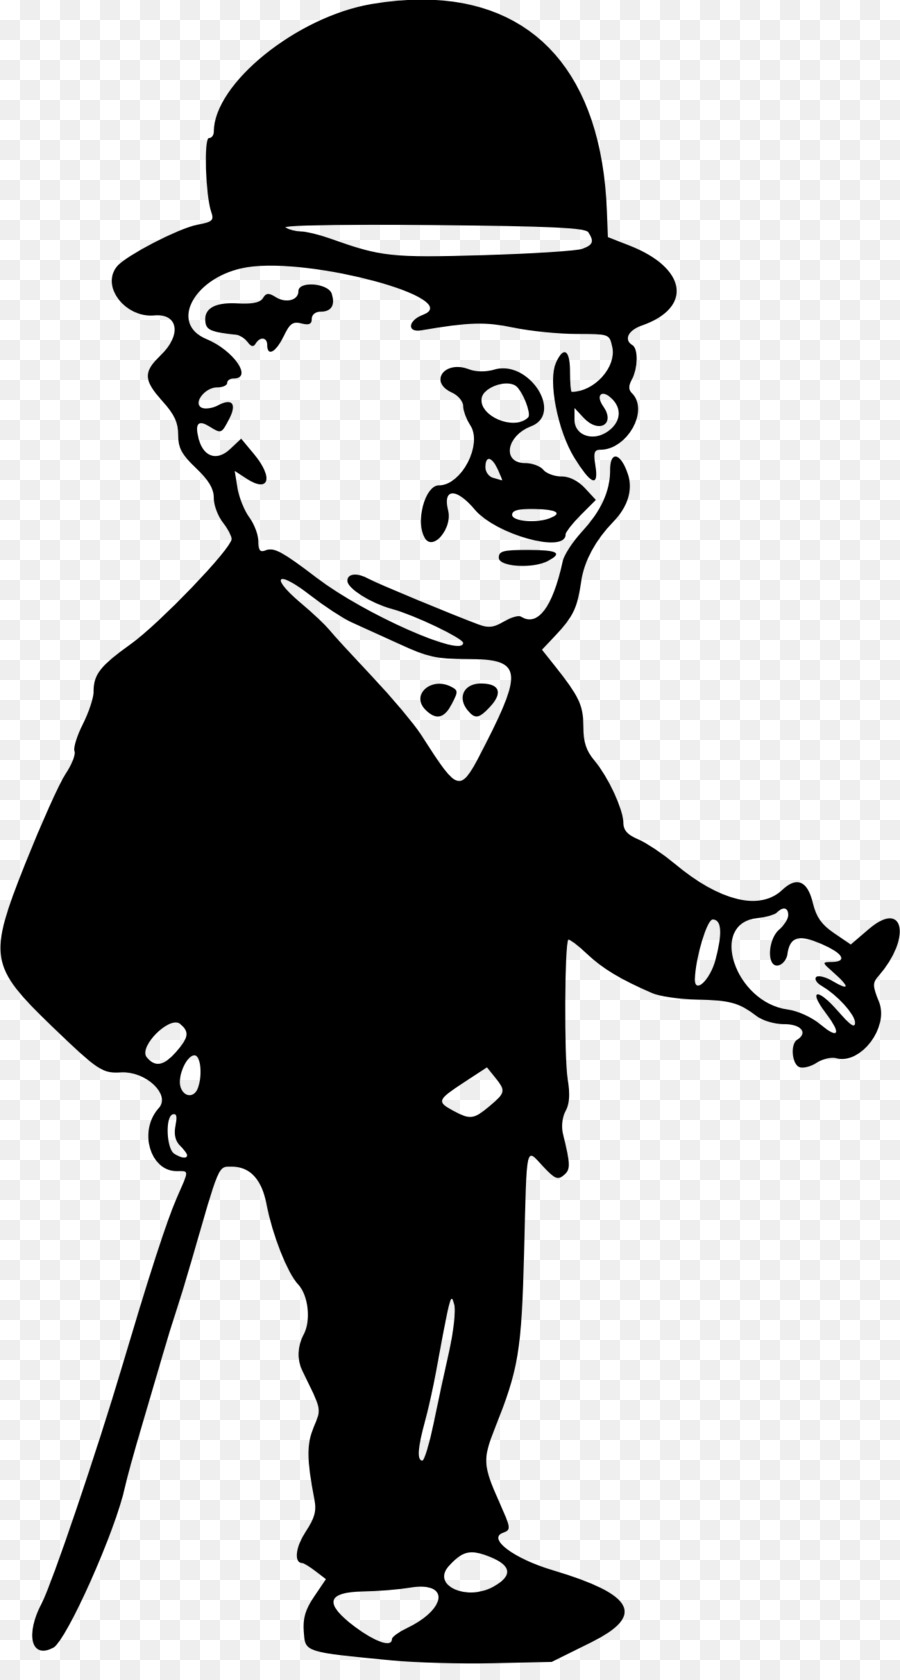 Man with a hat clipart clip black and white Top Hat Cartoon clipart - Hat, Silhouette, Line, transparent clip art clip black and white